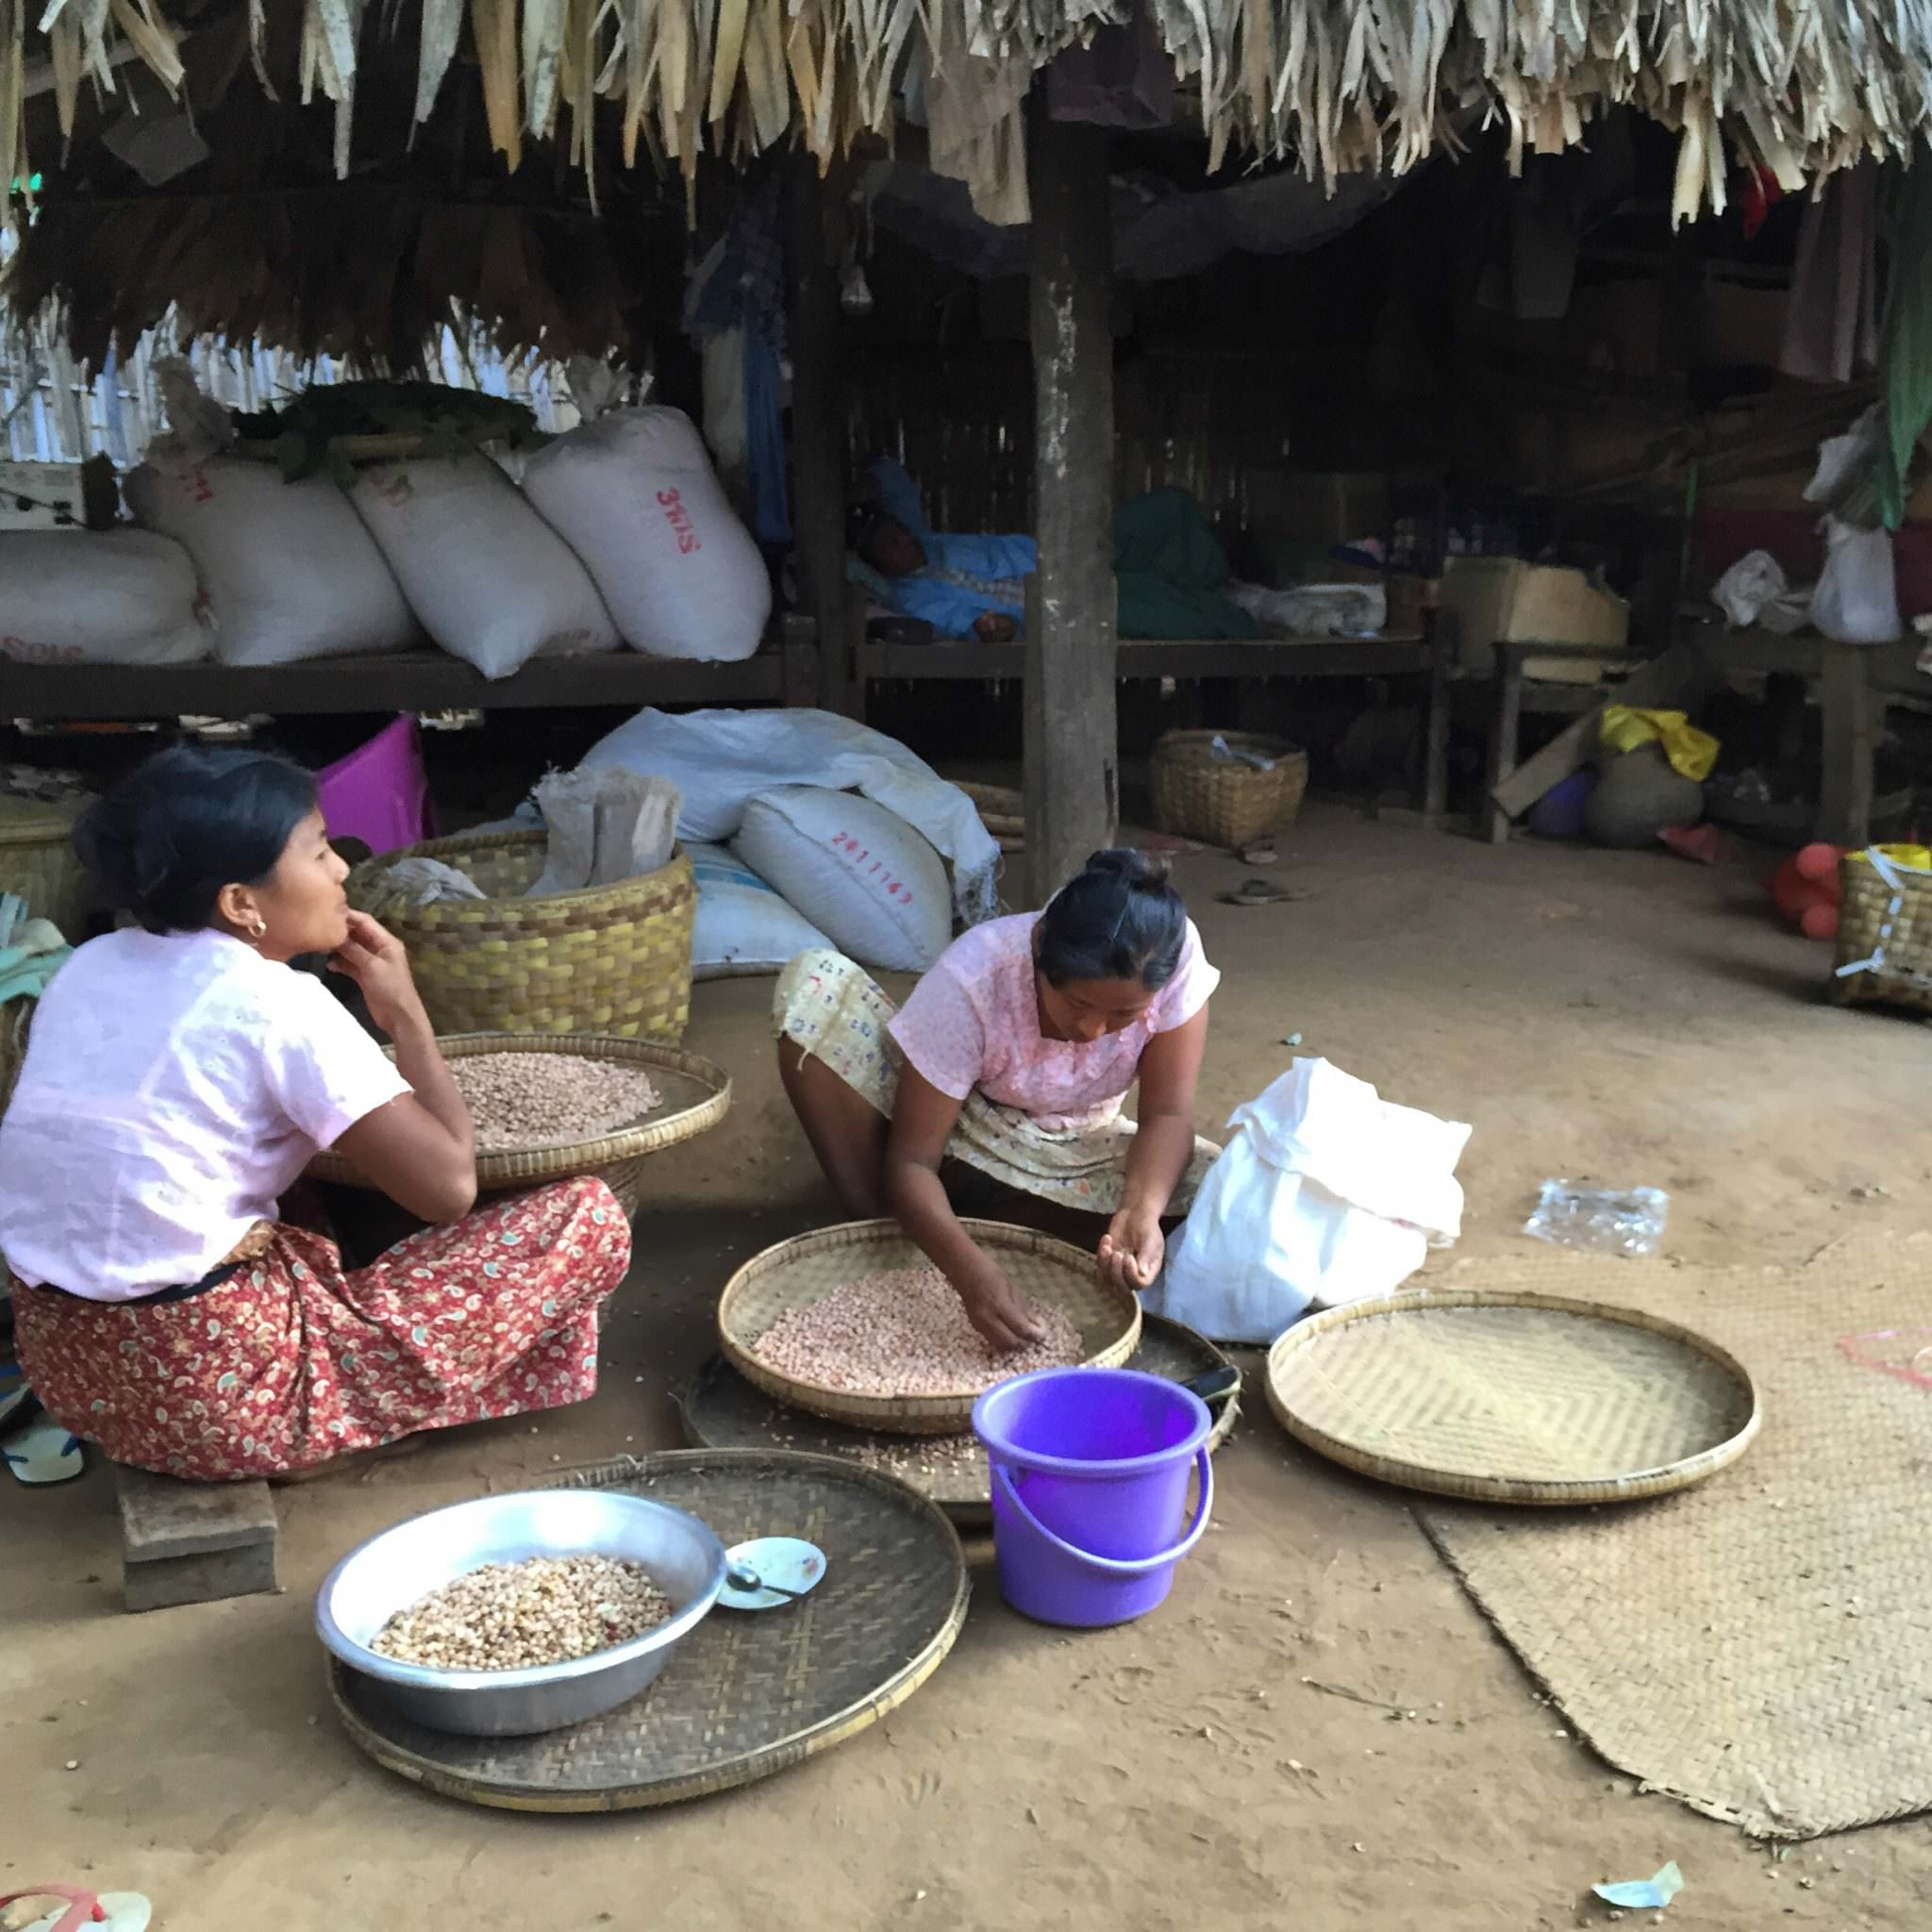 Women prepare peanuts for oil pressing and cooking. Peanuts crops are an economic focus for this village. © 2015 Gail Jessen